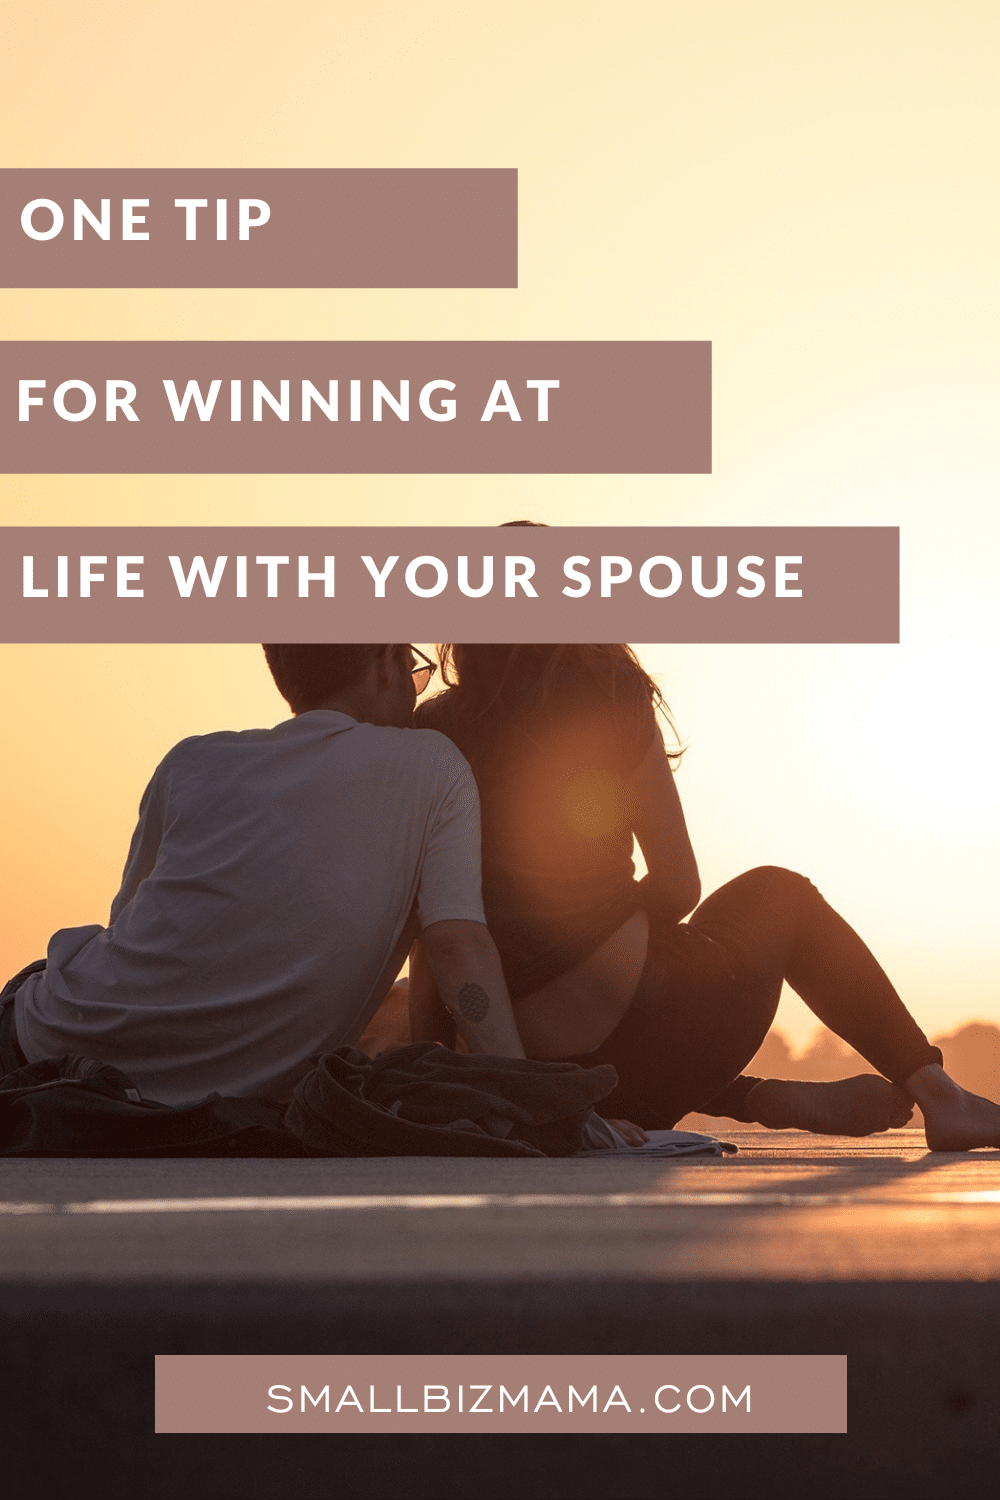 One tip for winning at life with your spouse